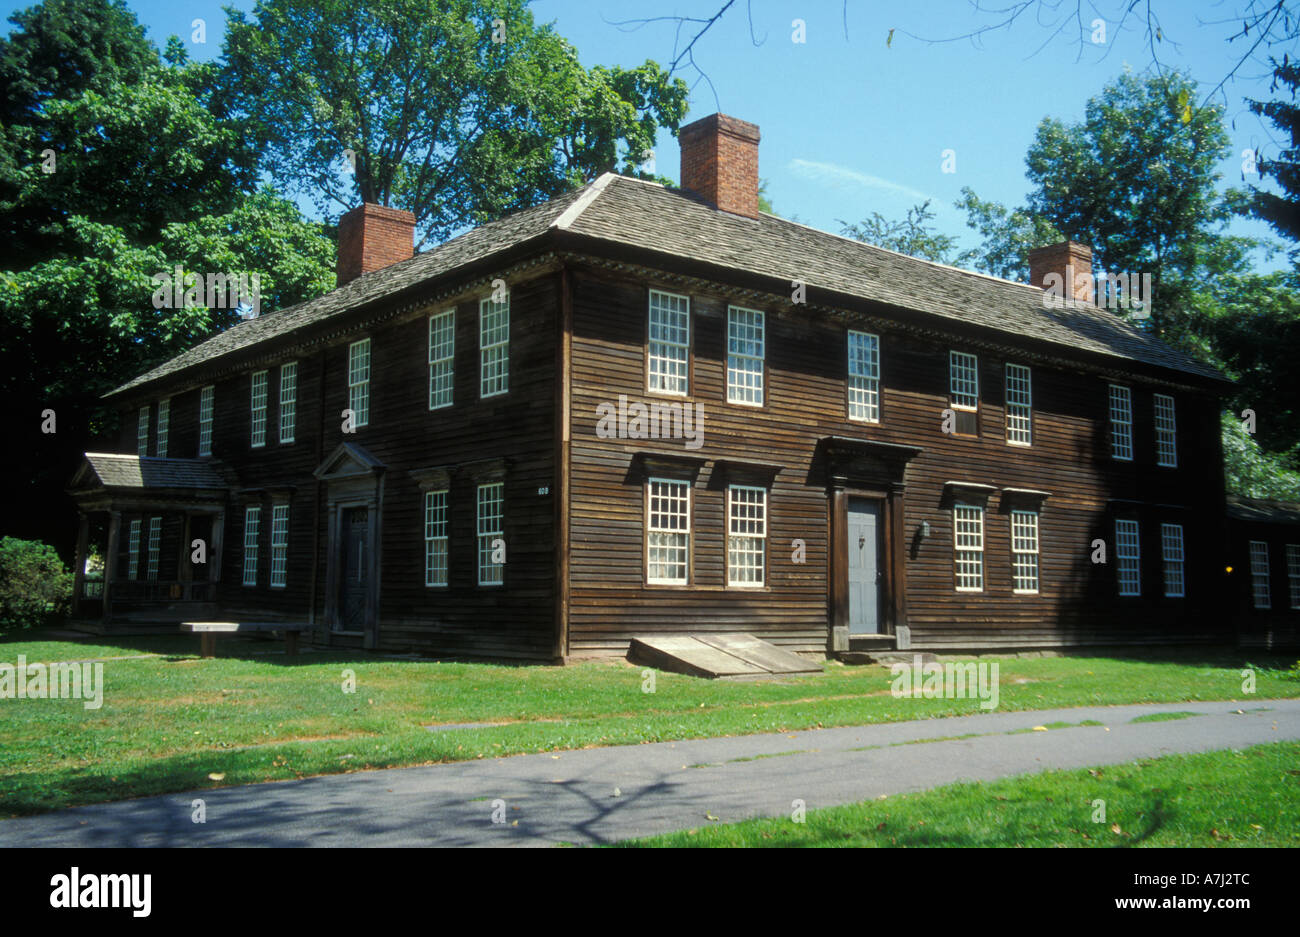 18Th Century House deerfield, massachusetts: the historic 18th century scaife house